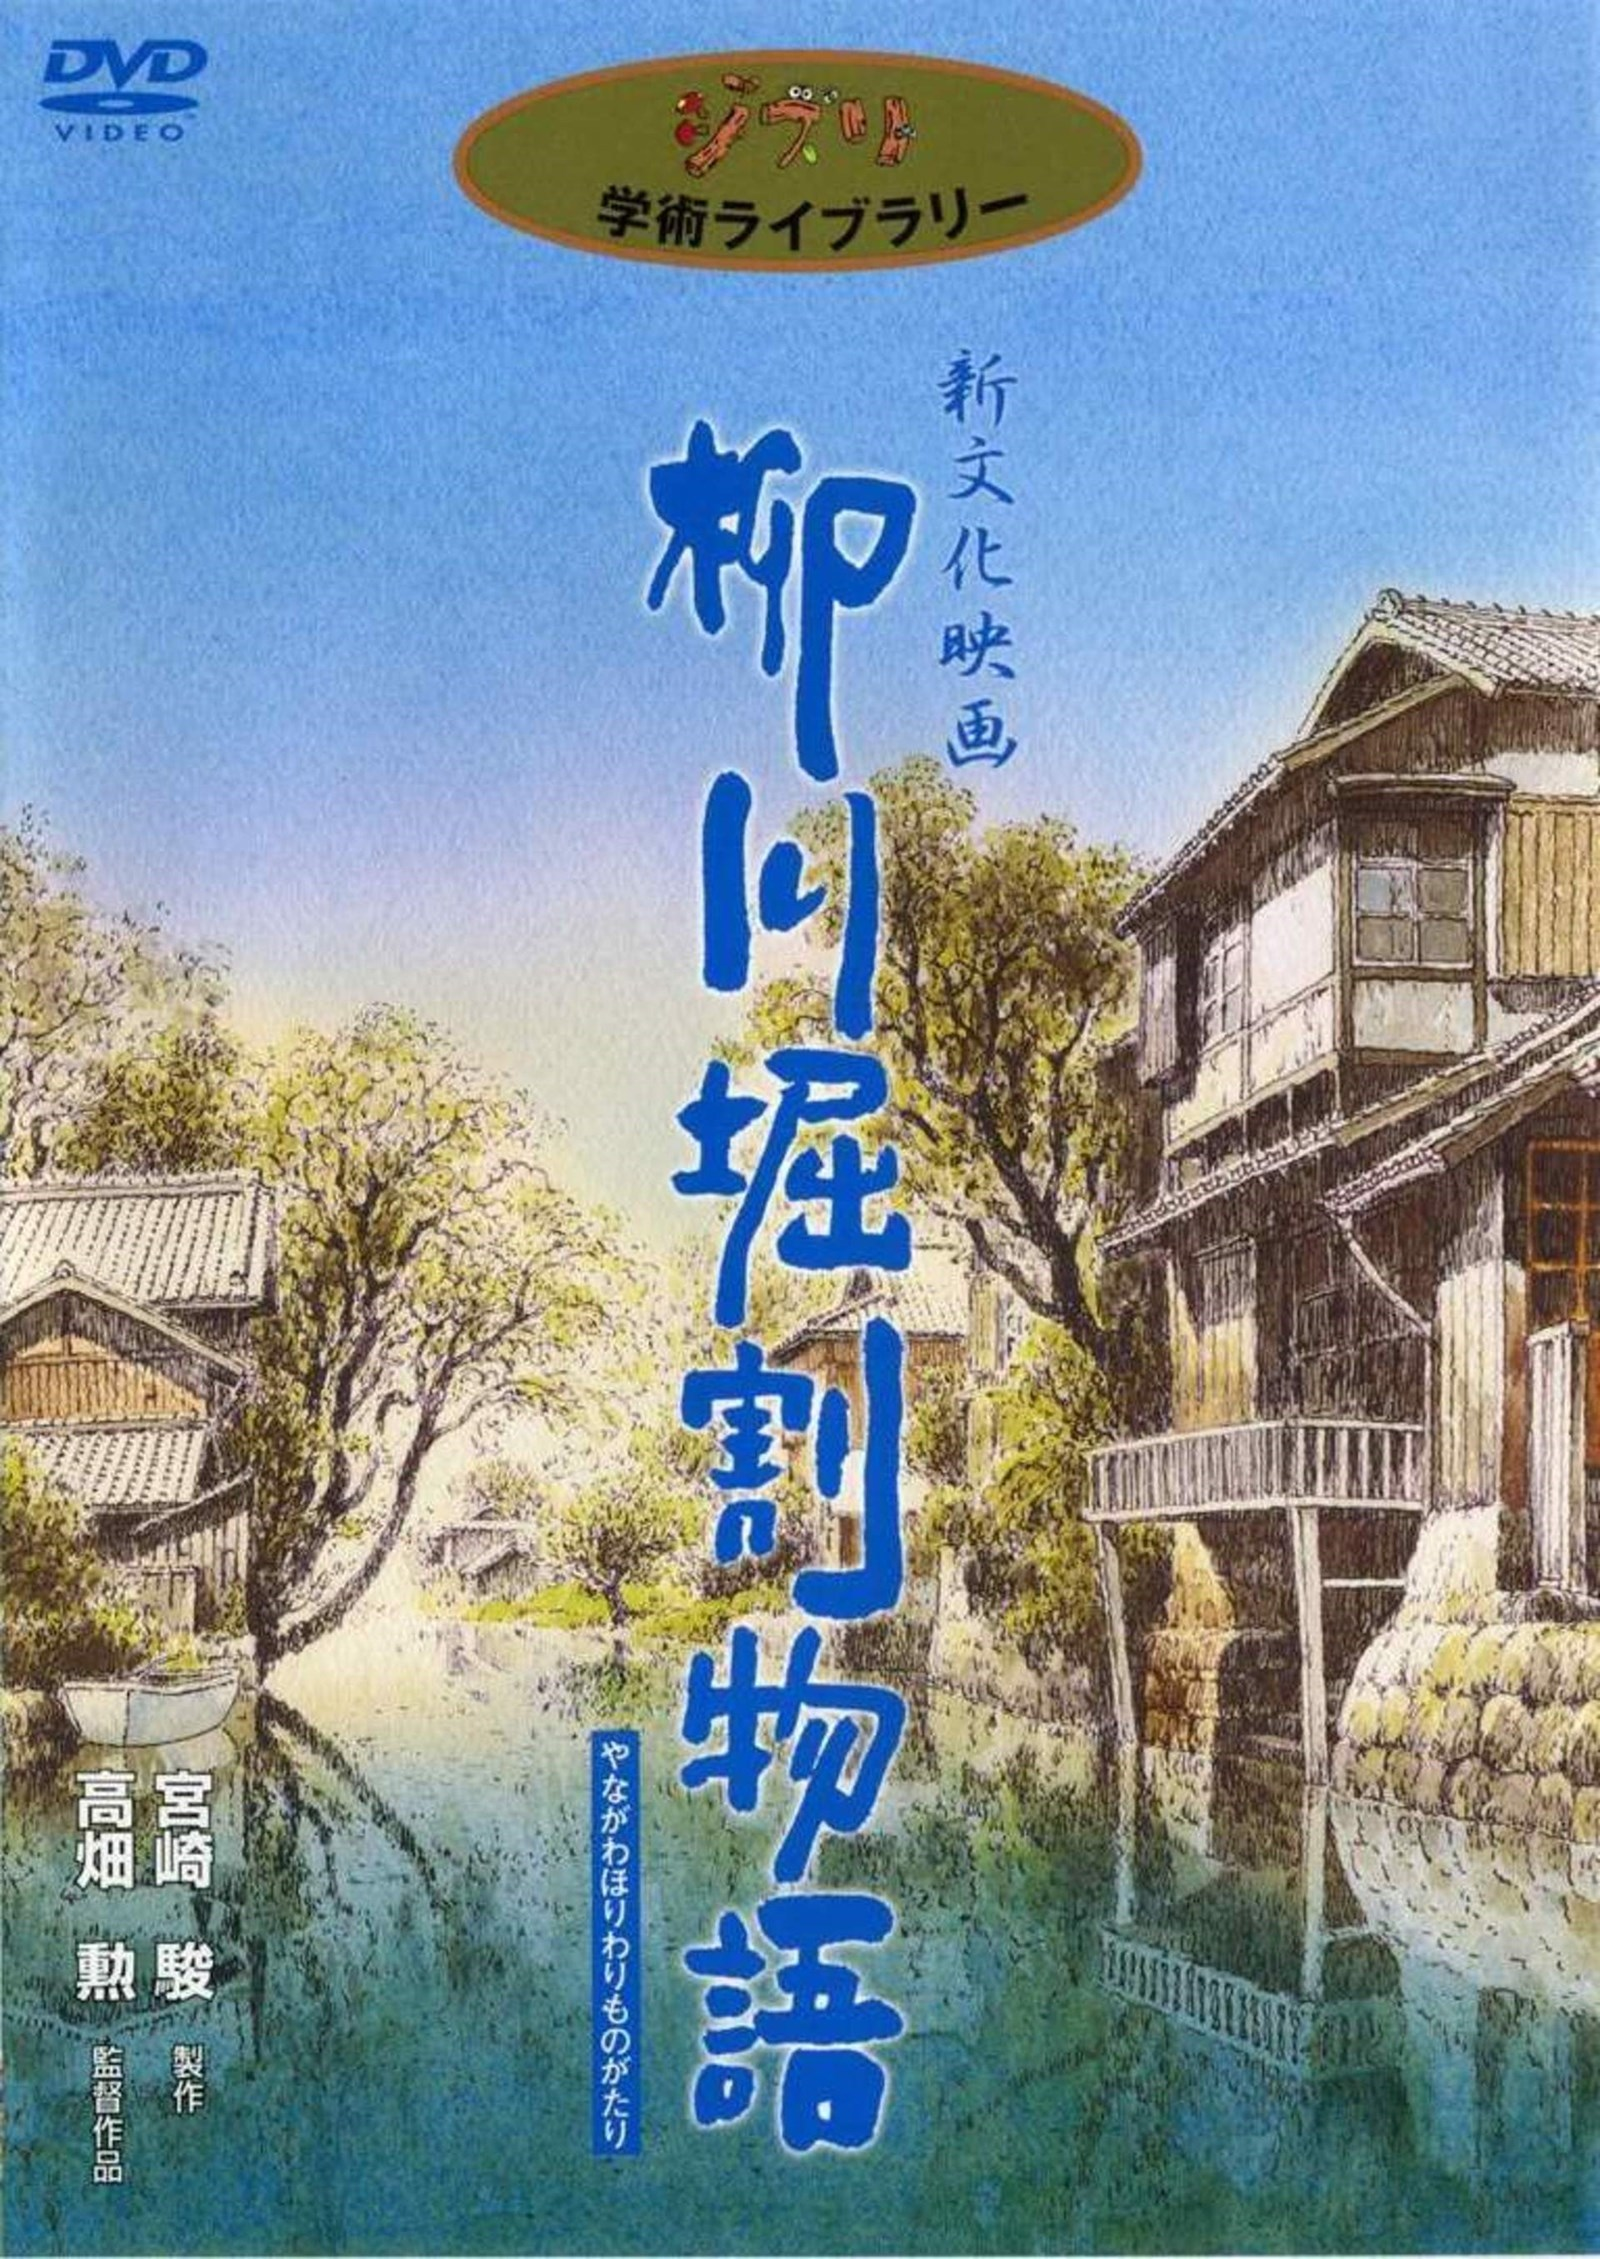 The story of Yanagawa canals